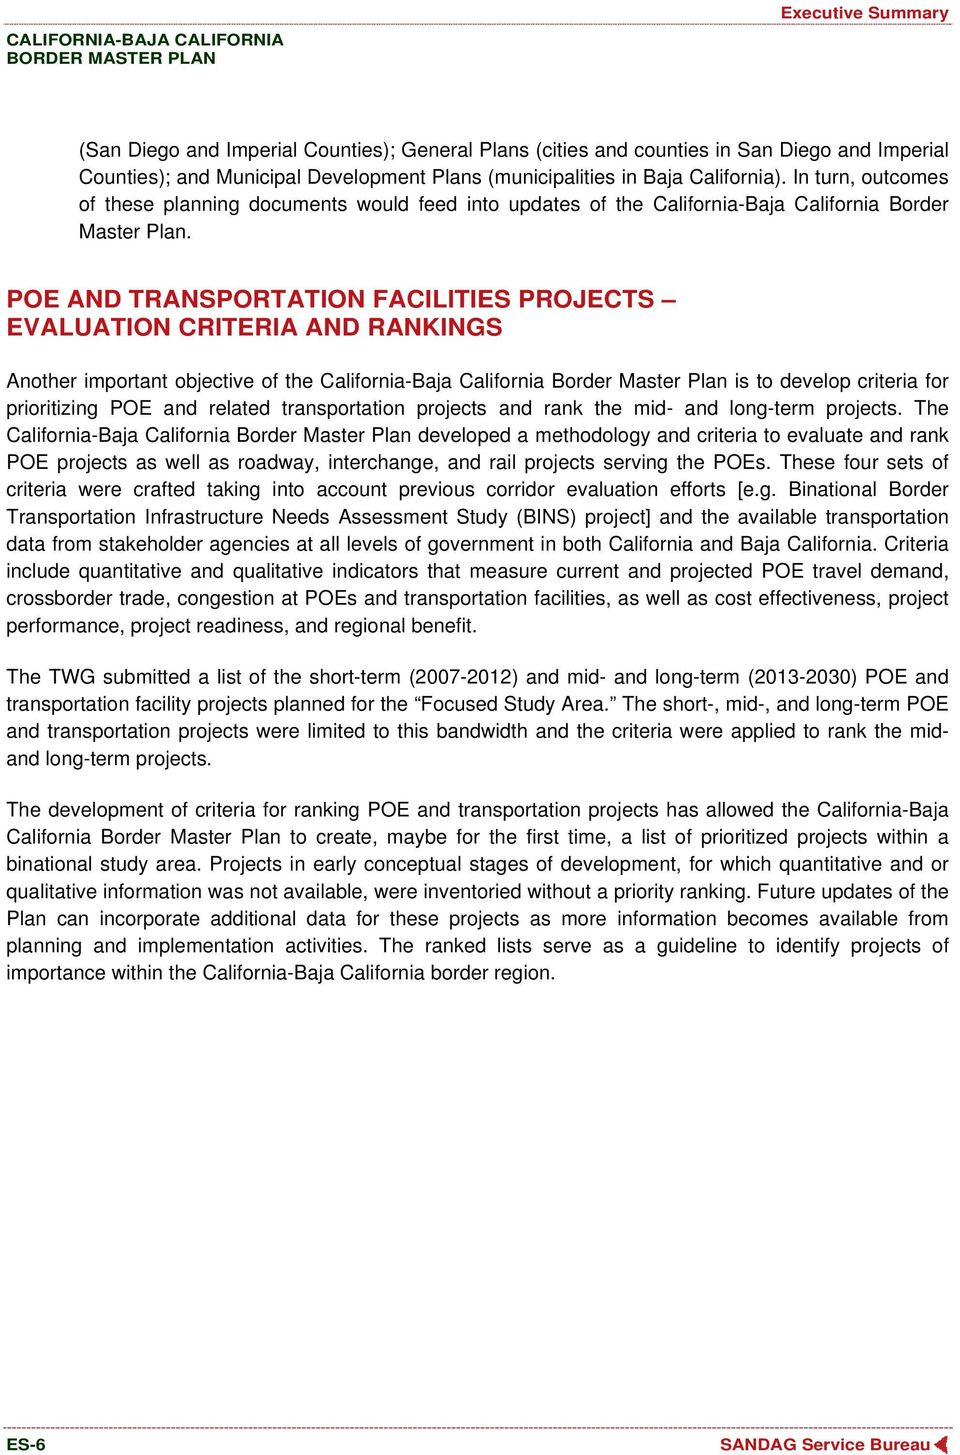 POE AND TRANSPORTATION FACILITIES PROJECTS EVALUATION CRITERIA AND RANKINGS Another important objective of the California-Baja California Border Master Plan is to develop criteria for prioritizing